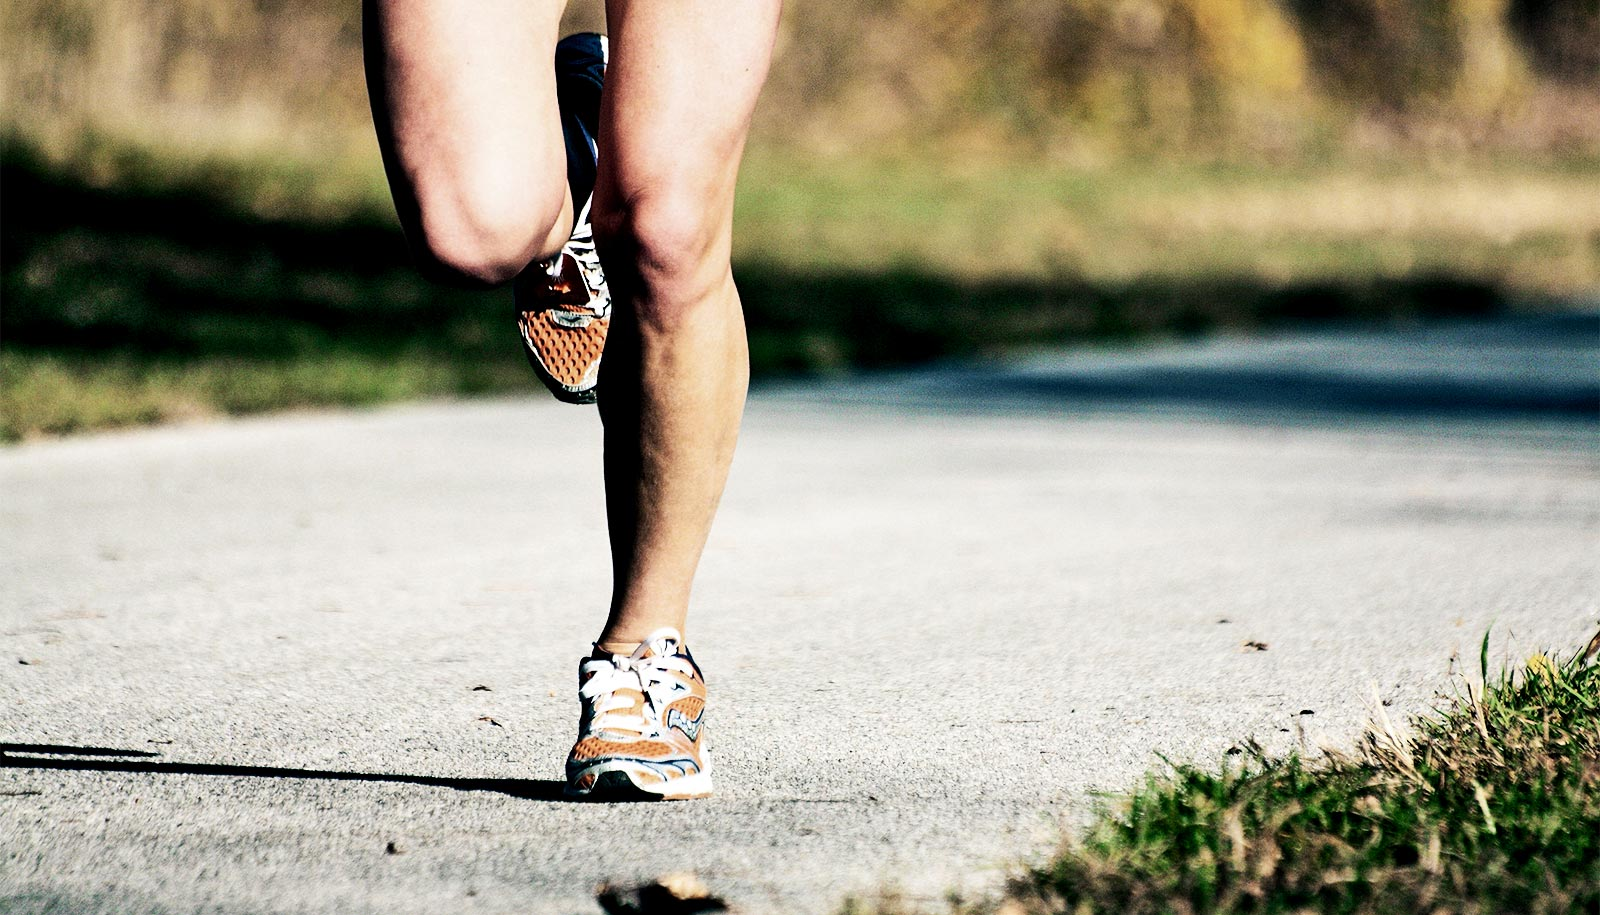 ACL tears can cause harmful changes to your brain